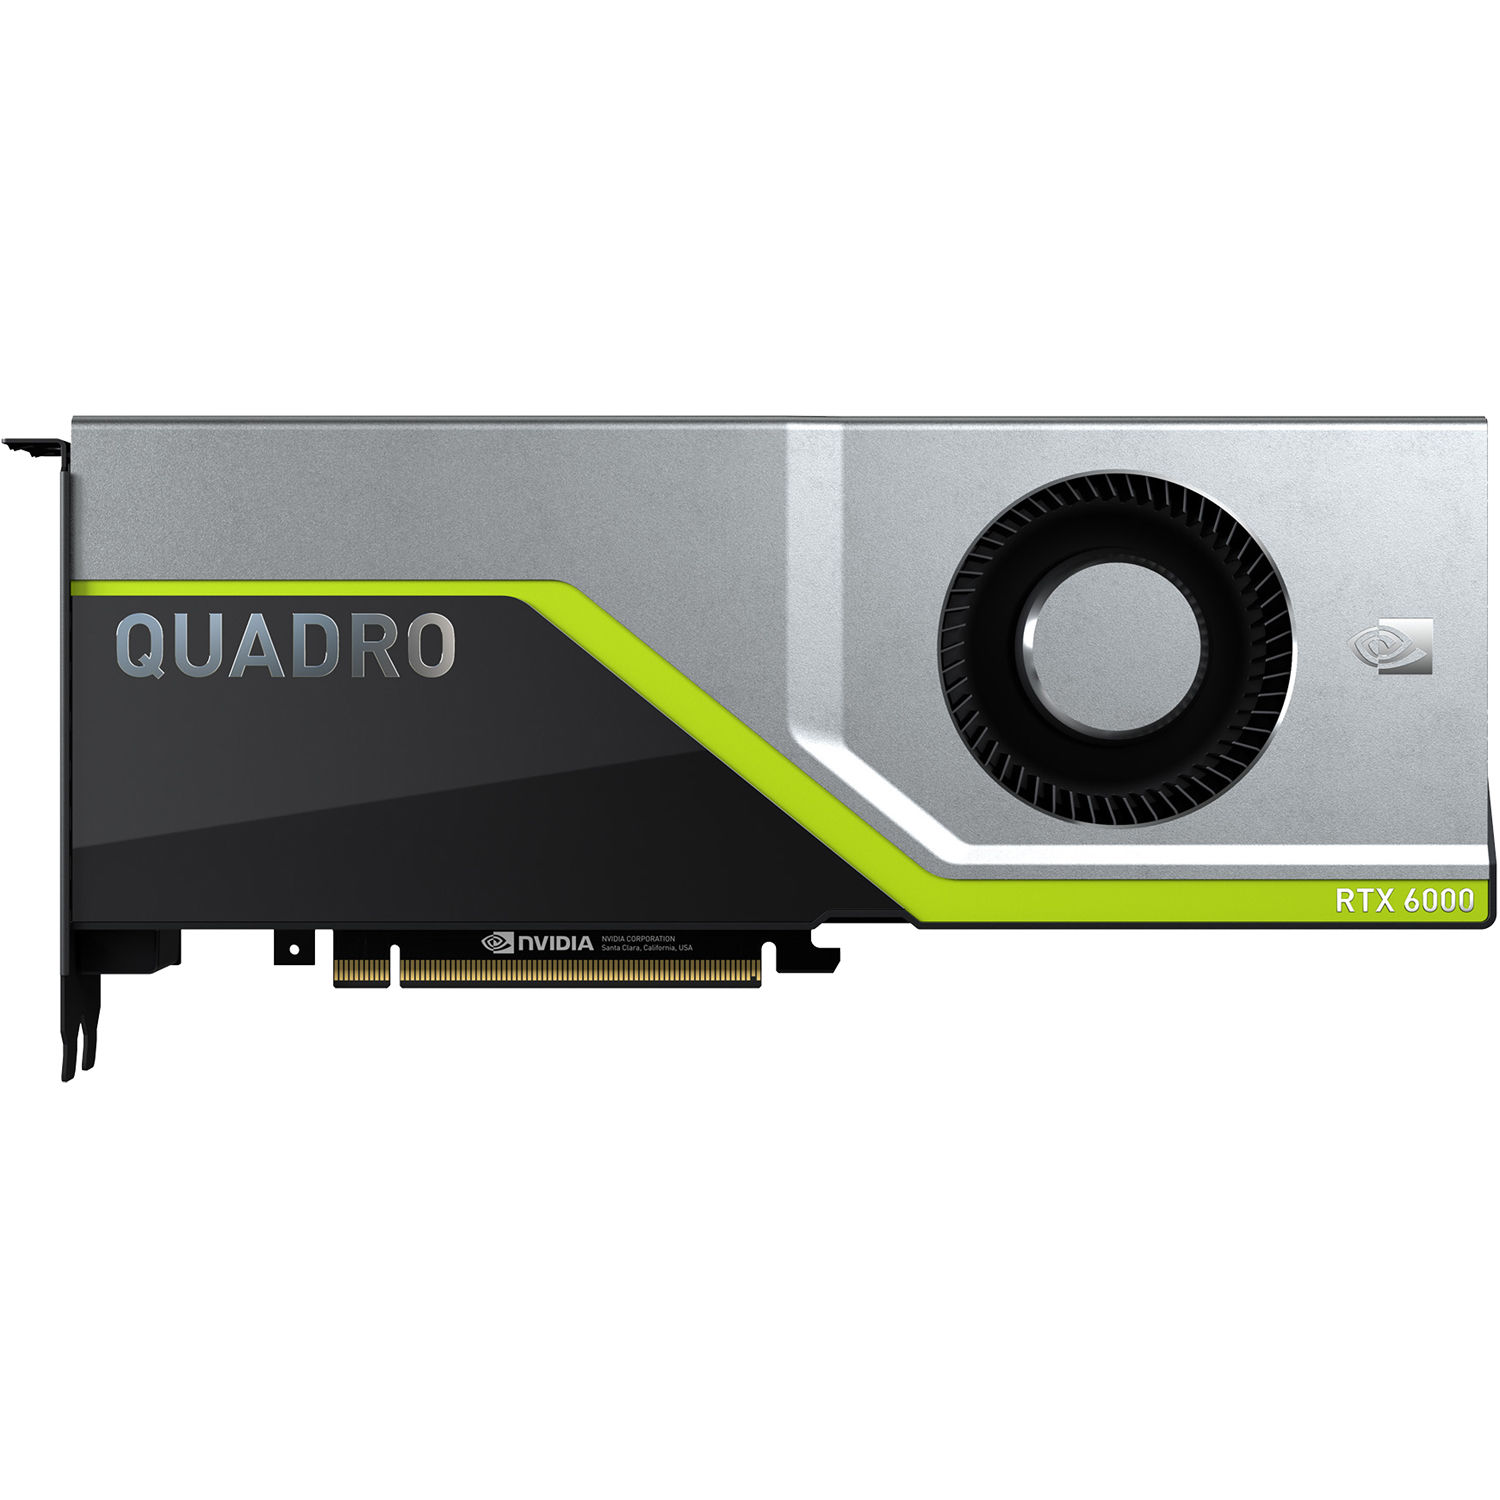 Internal Computer Expansion PNY Quadro RTX 6000 24GB DDR6 Graphics Card